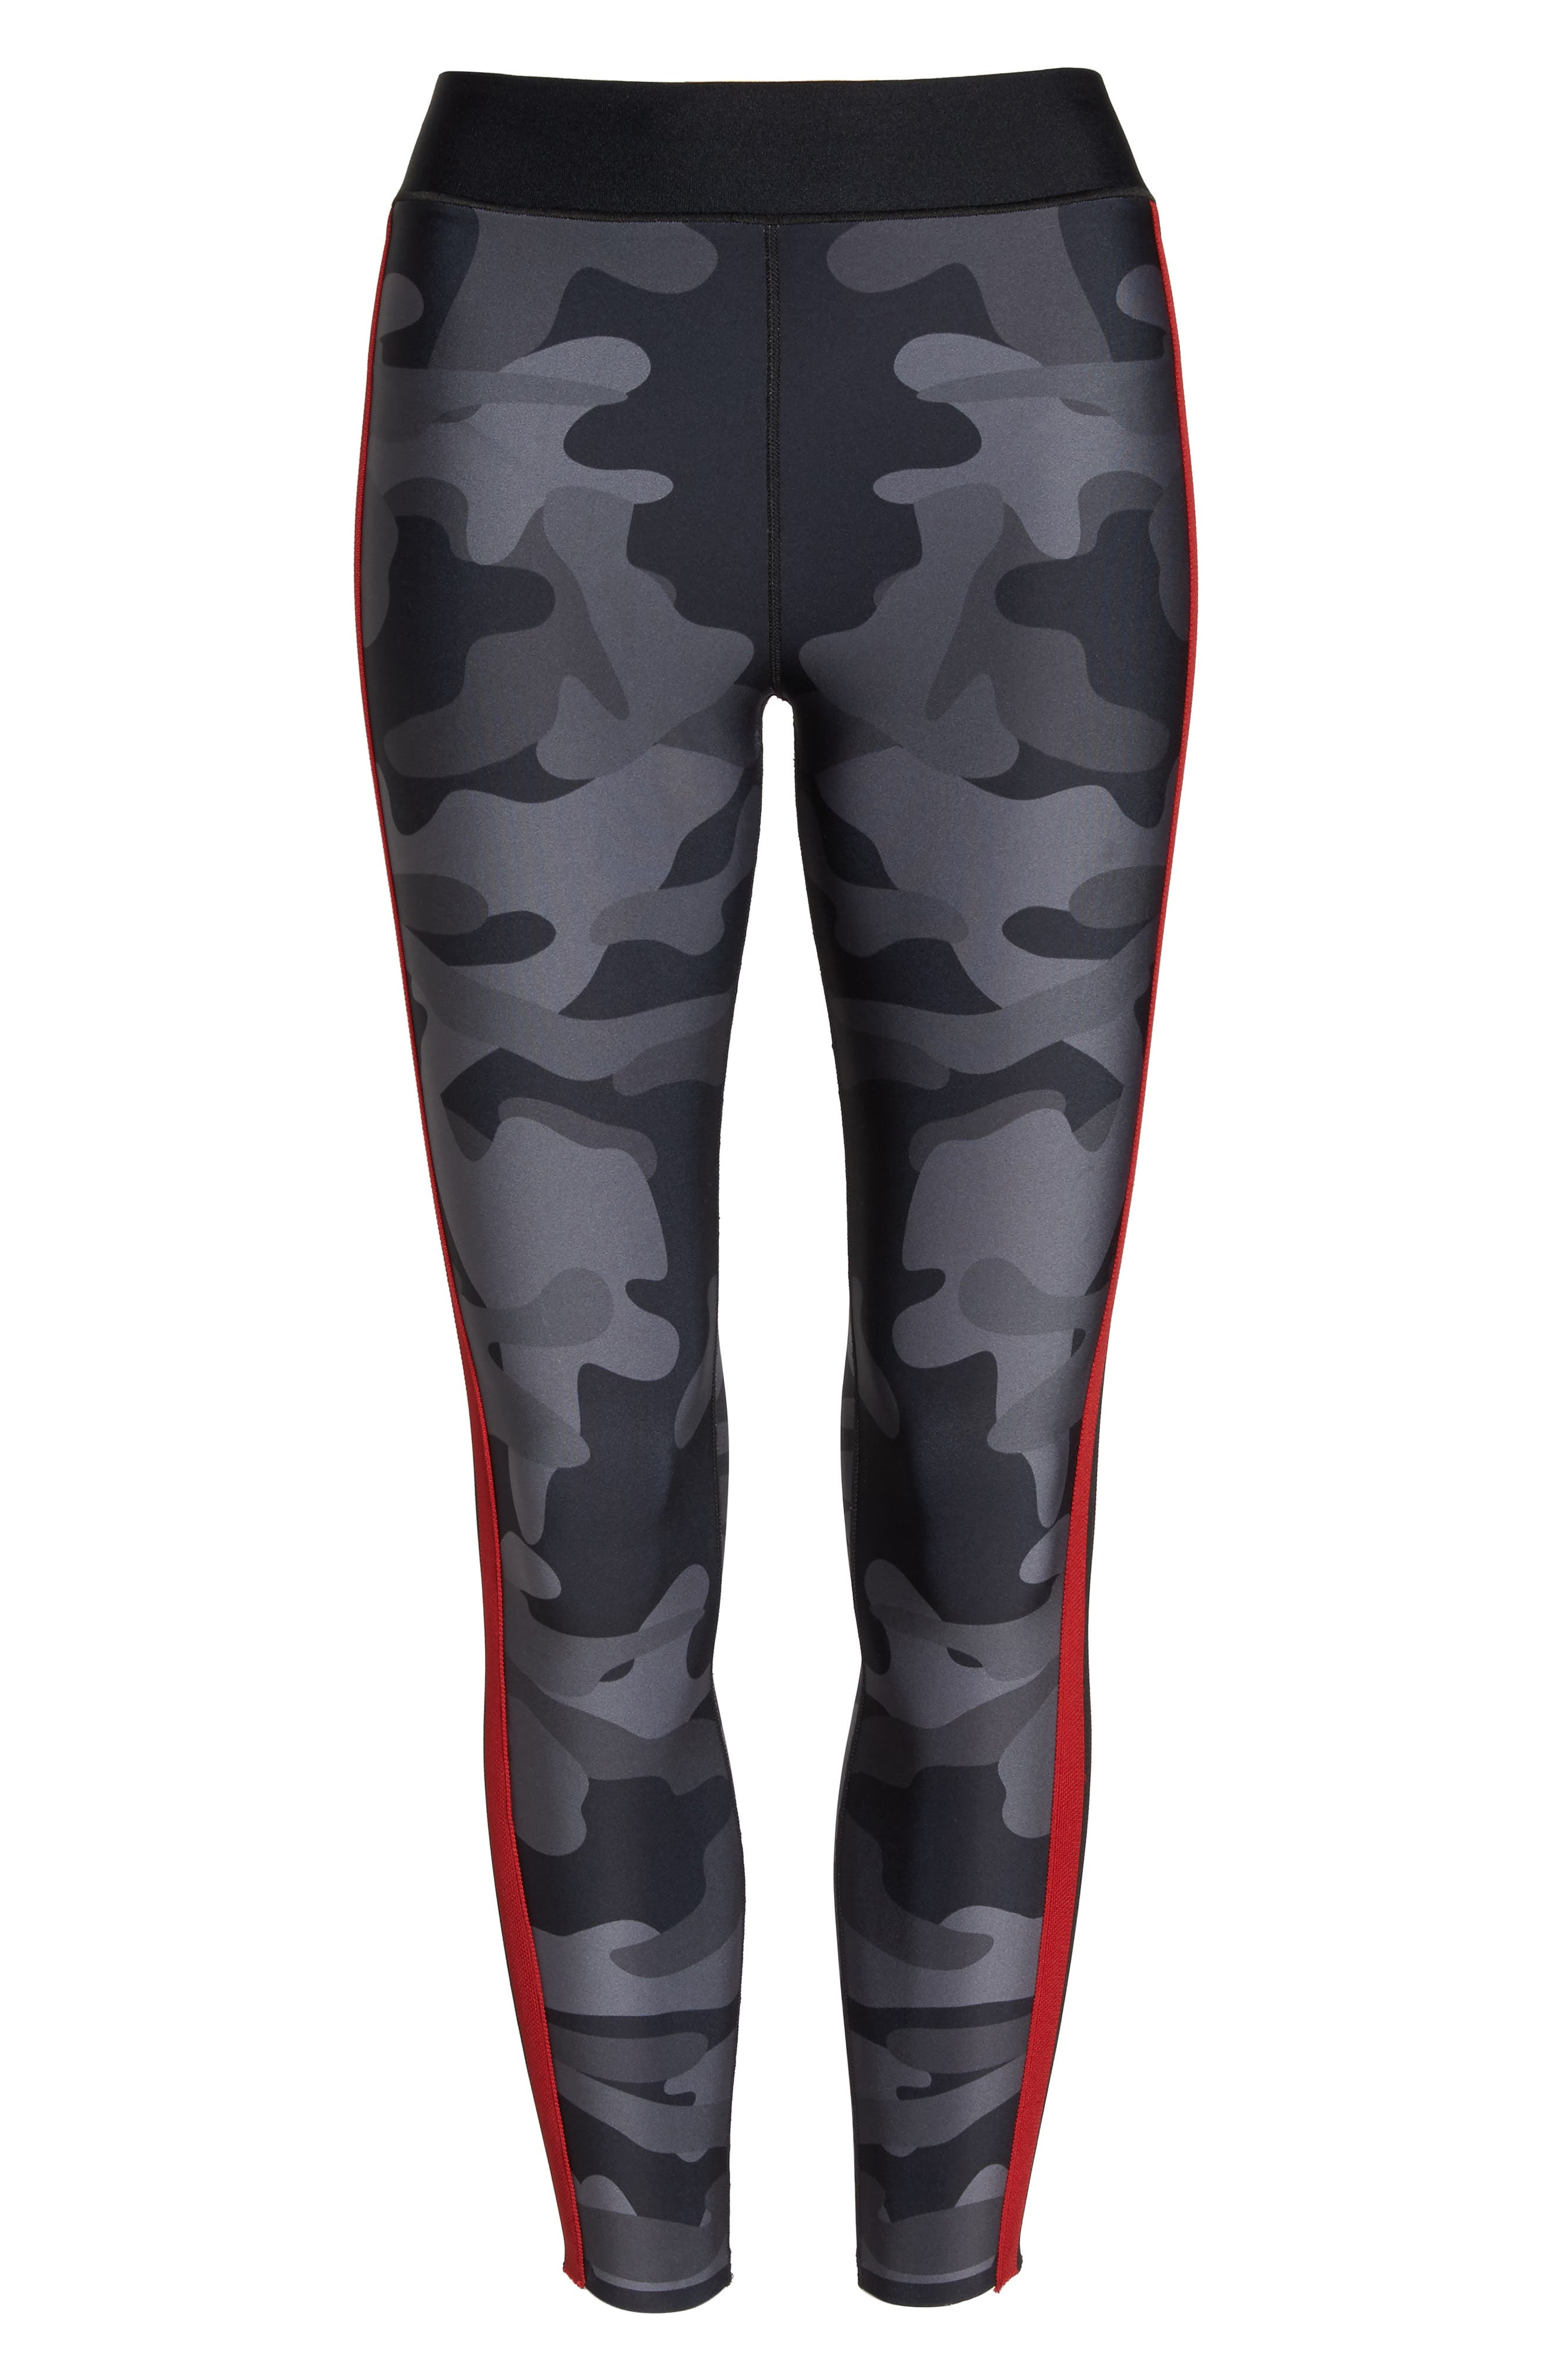 Ultra Camo Collegiate Leggings,                             Alternate thumbnail 7, color,                             005